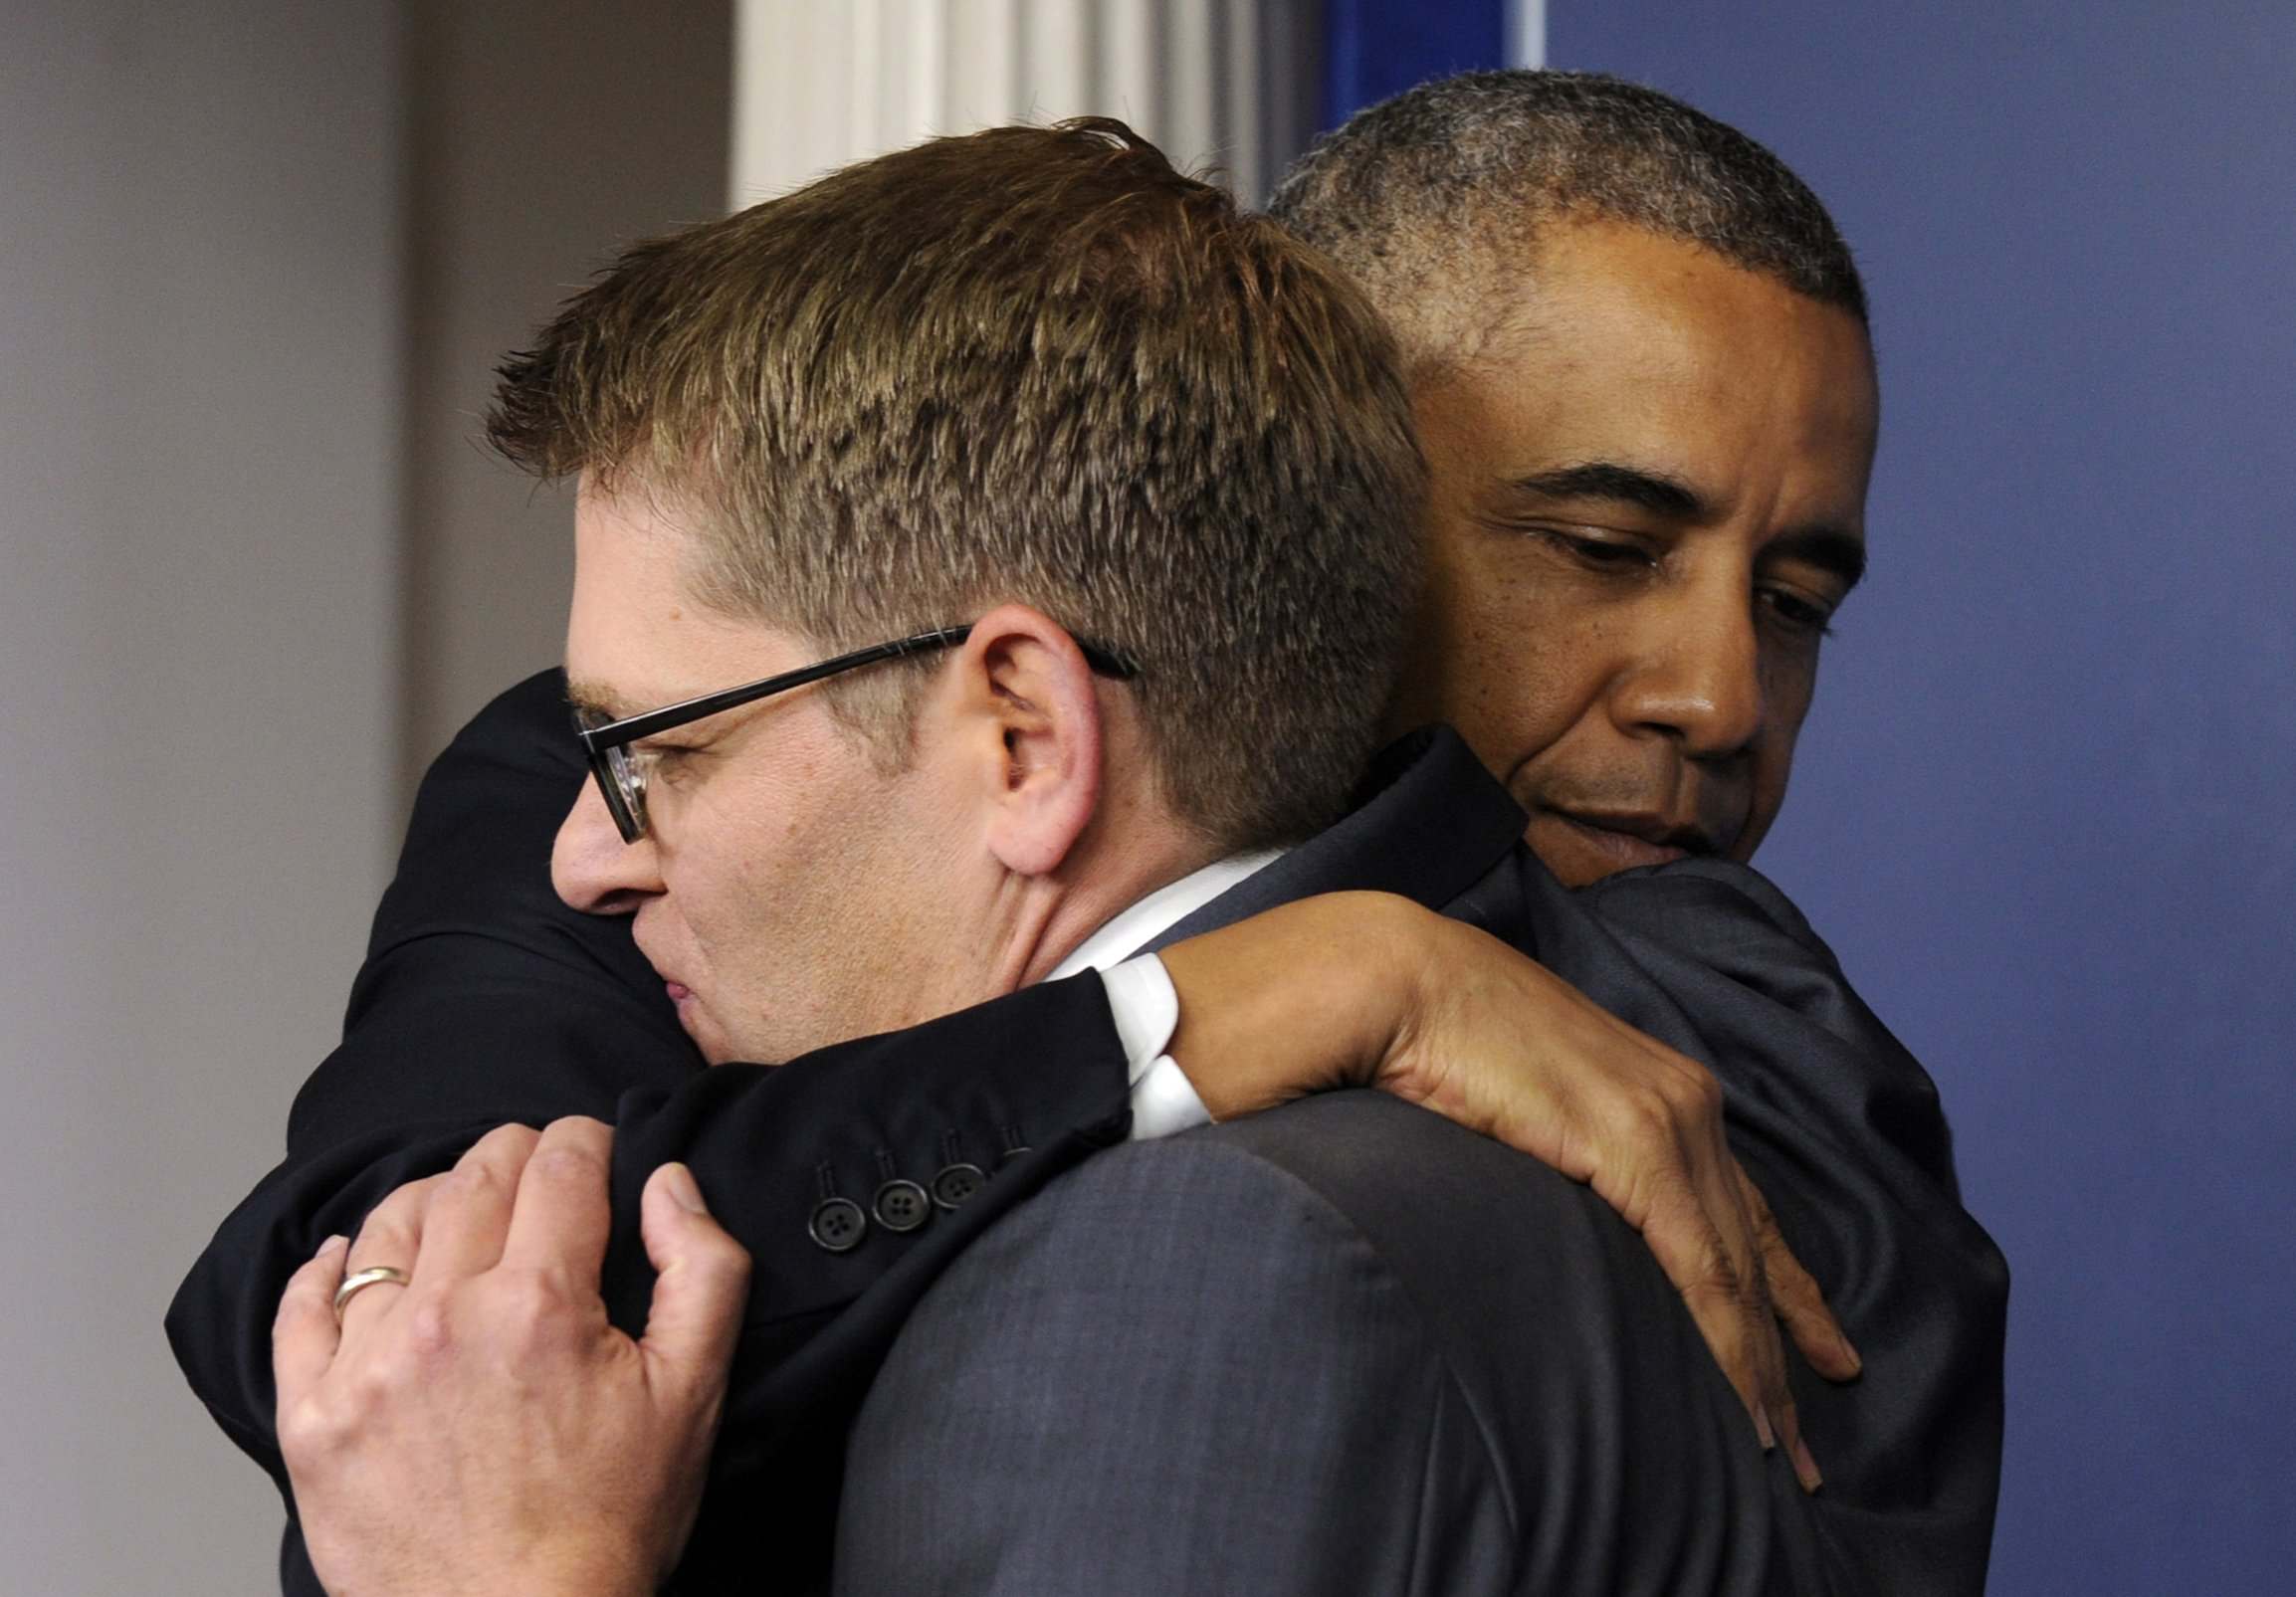 President Barack Obama gives White House press secretary Jay Carney a hug after announcing that Carney will step down later next month, during a surprise visit to the Brady Press Briefing Room of the White House on May 30, 2014 in Washington.